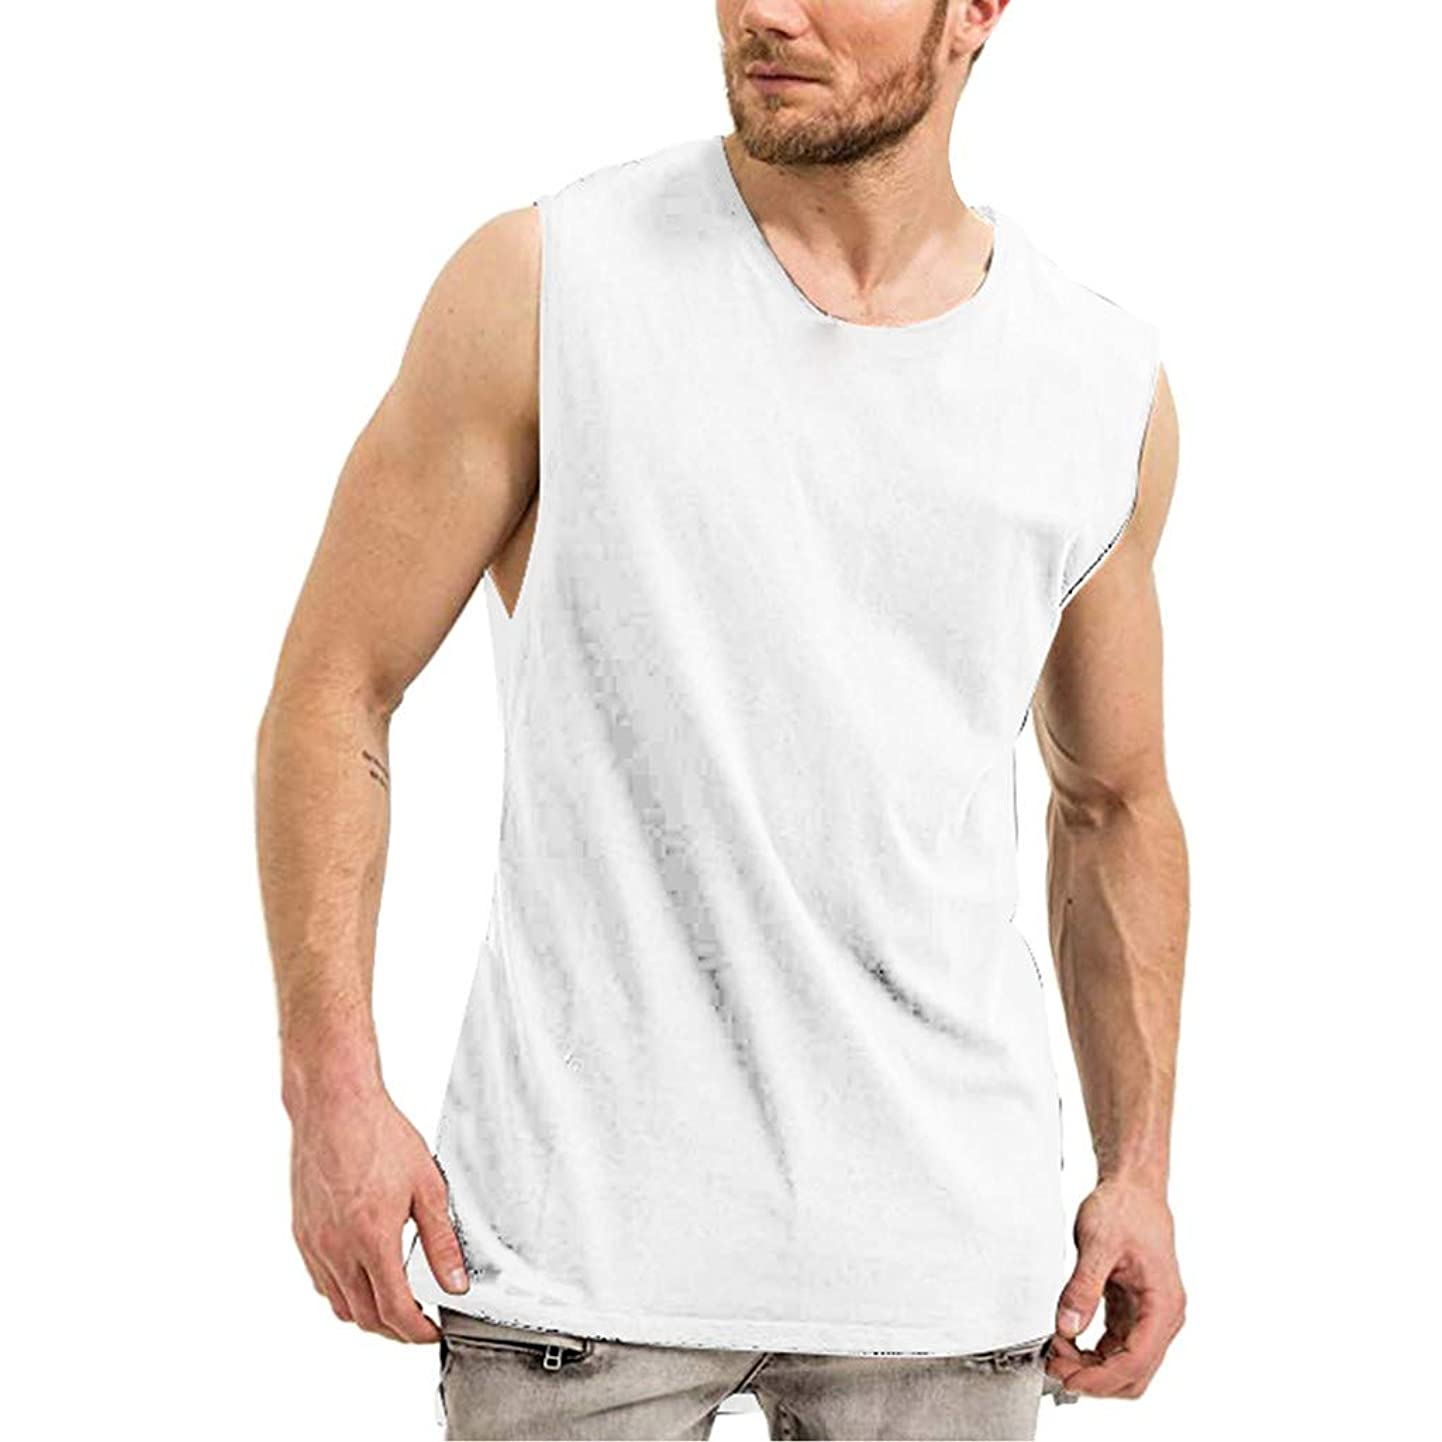 Corriee Mens Tank Tops Workout Cotton Solid Color Vest Men's Sleeveless Workout T- Shirts wwlncbgevus5